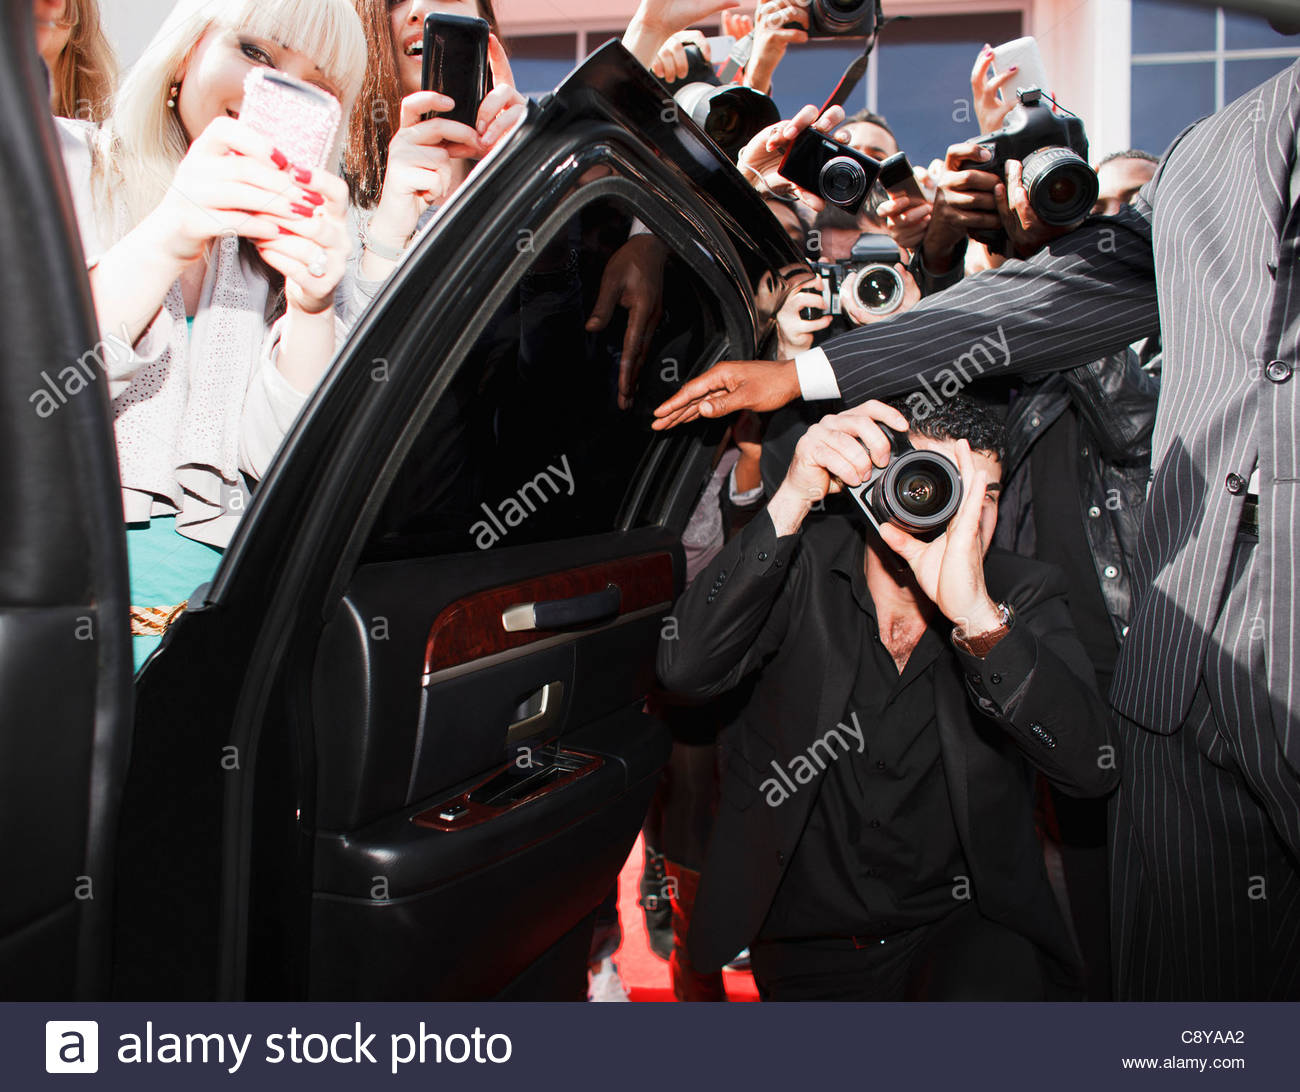 Fans taking pictures with cell phone behind barrier stock photo - Paparazzi And Fans Taking Photos Inside Car Door Stock Image